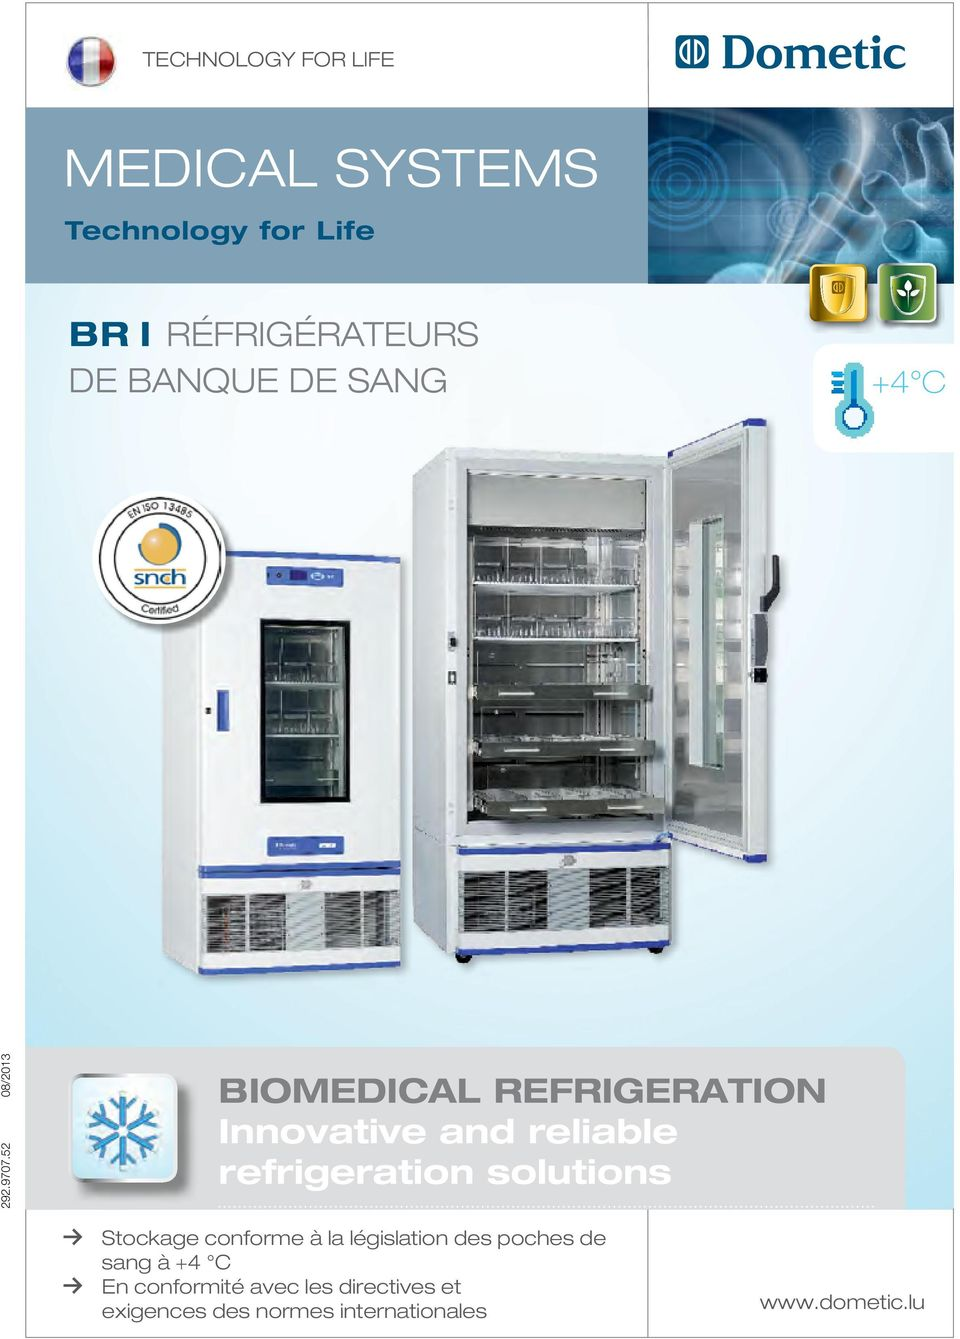 Freezers and Ice Liners Absorption Refrigerators and Freezers Vaccine Transport Boxes Stockage conforme à la